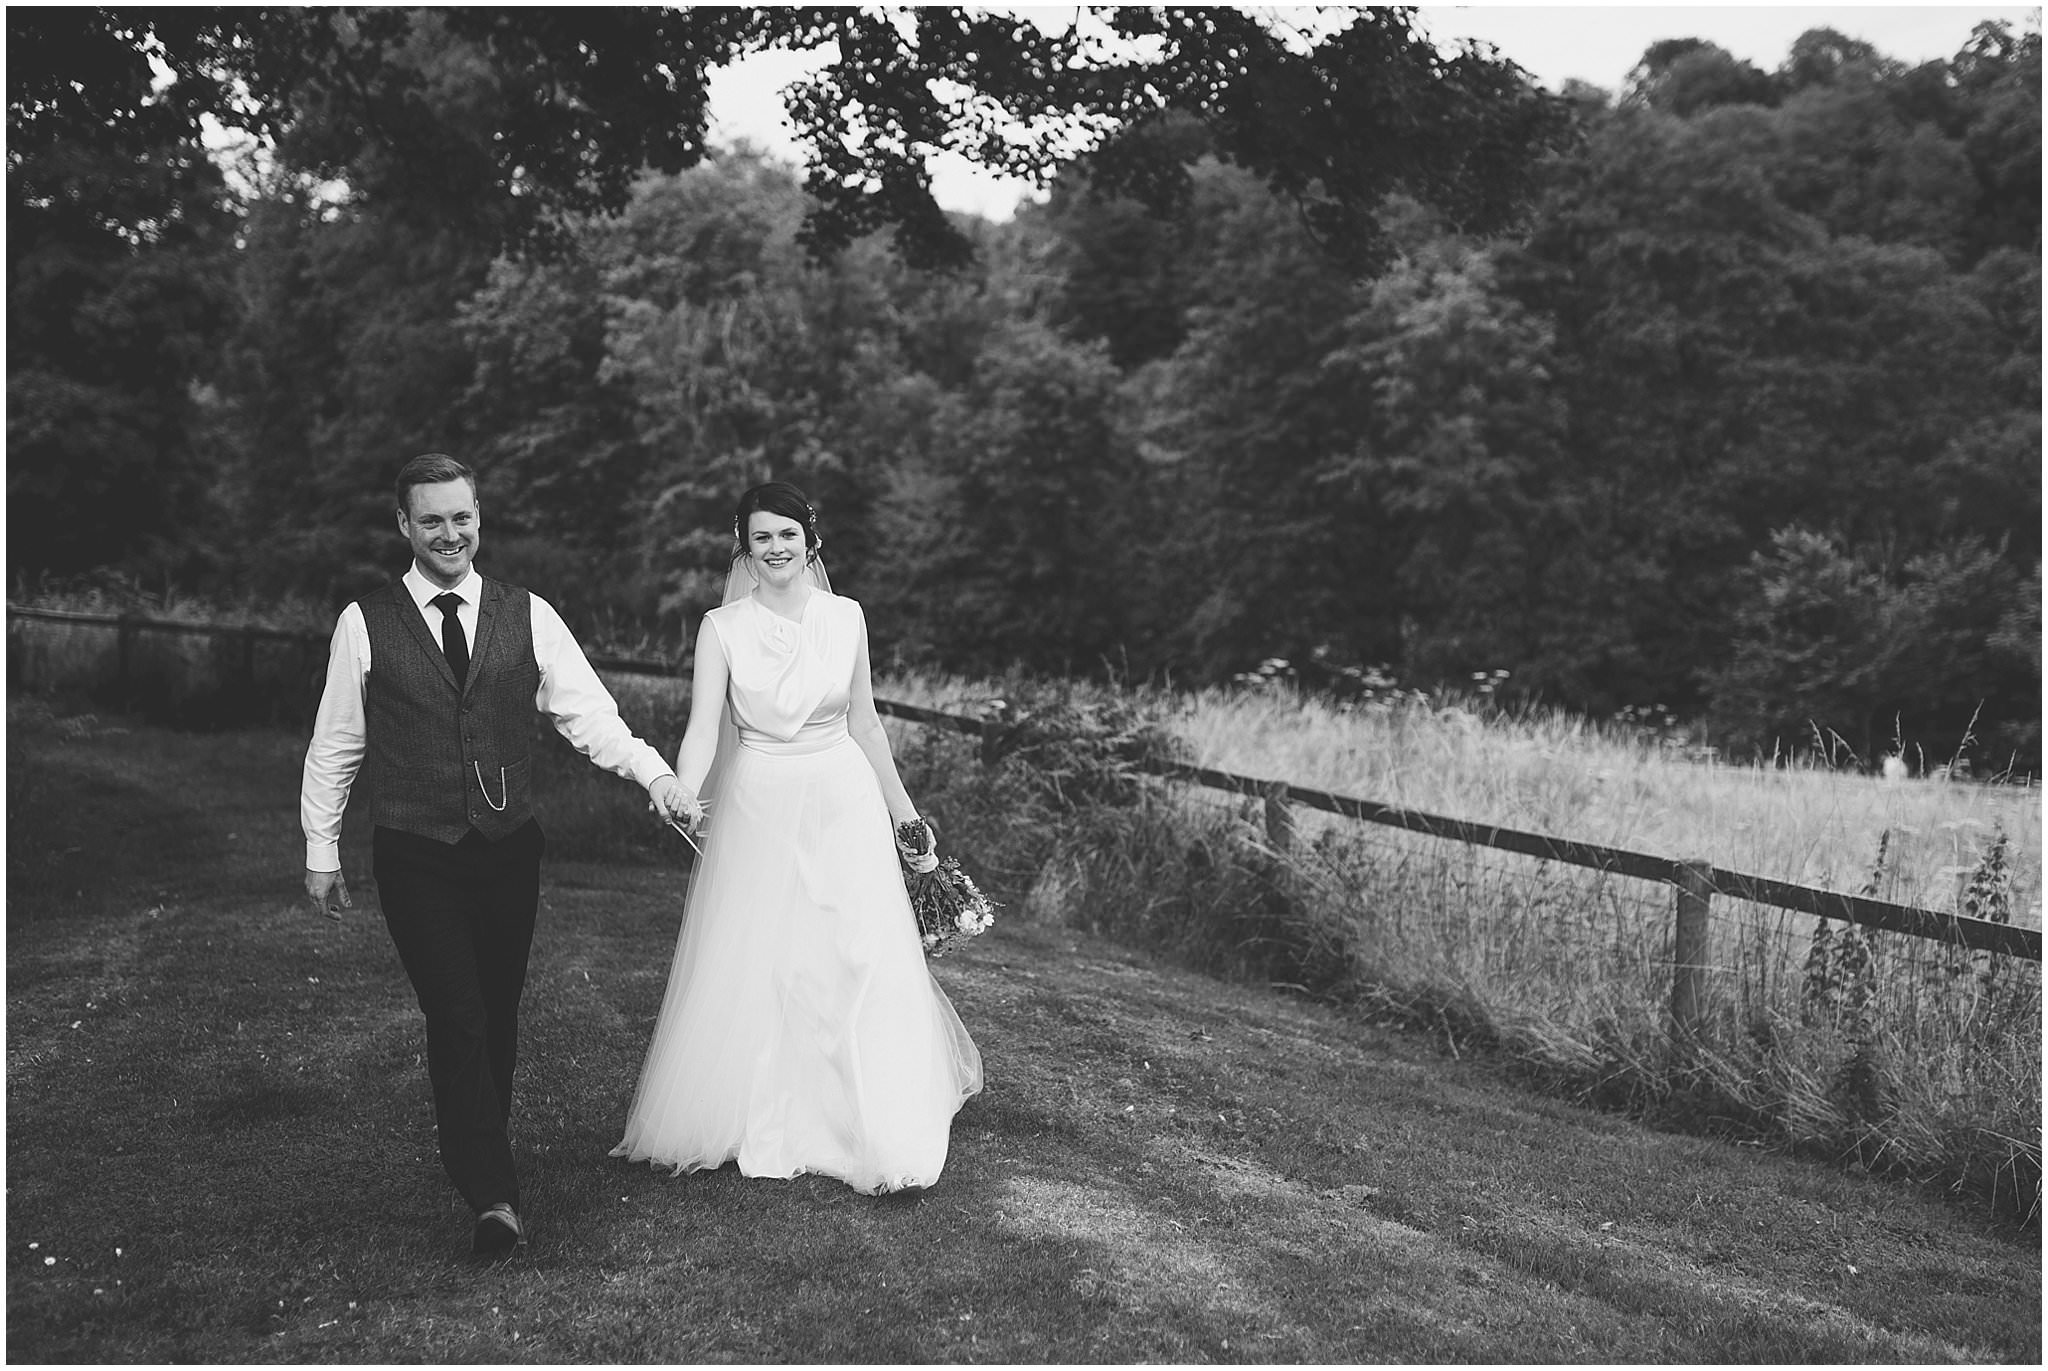 fay & tim wedding at ashley wood farm_0476